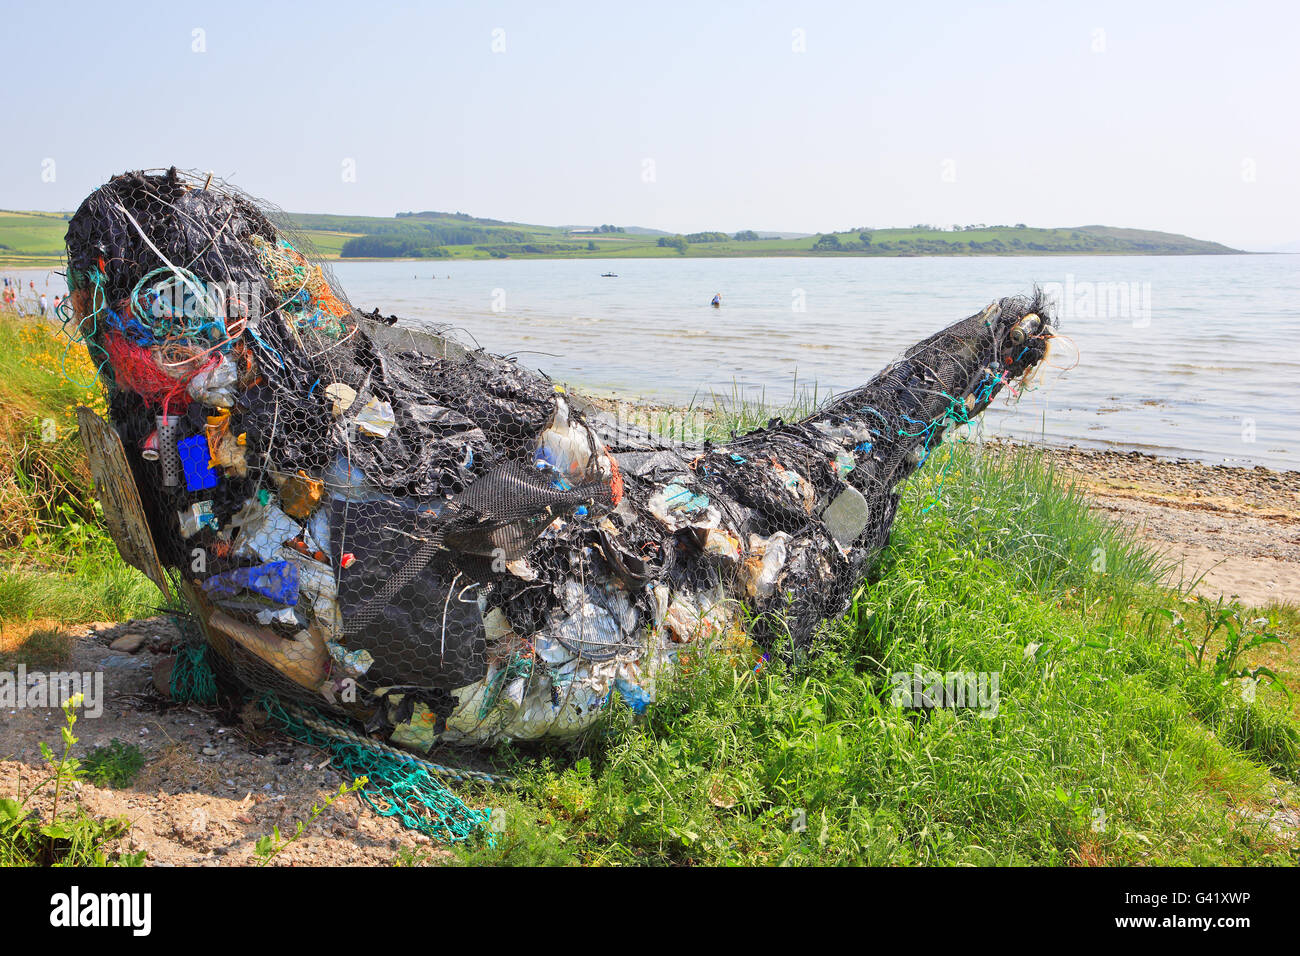 Whale sculpture at Ettrick Bay on Isle of Bute. It's made of flotsam and jetsam materials washed up on the shore - Stock Image